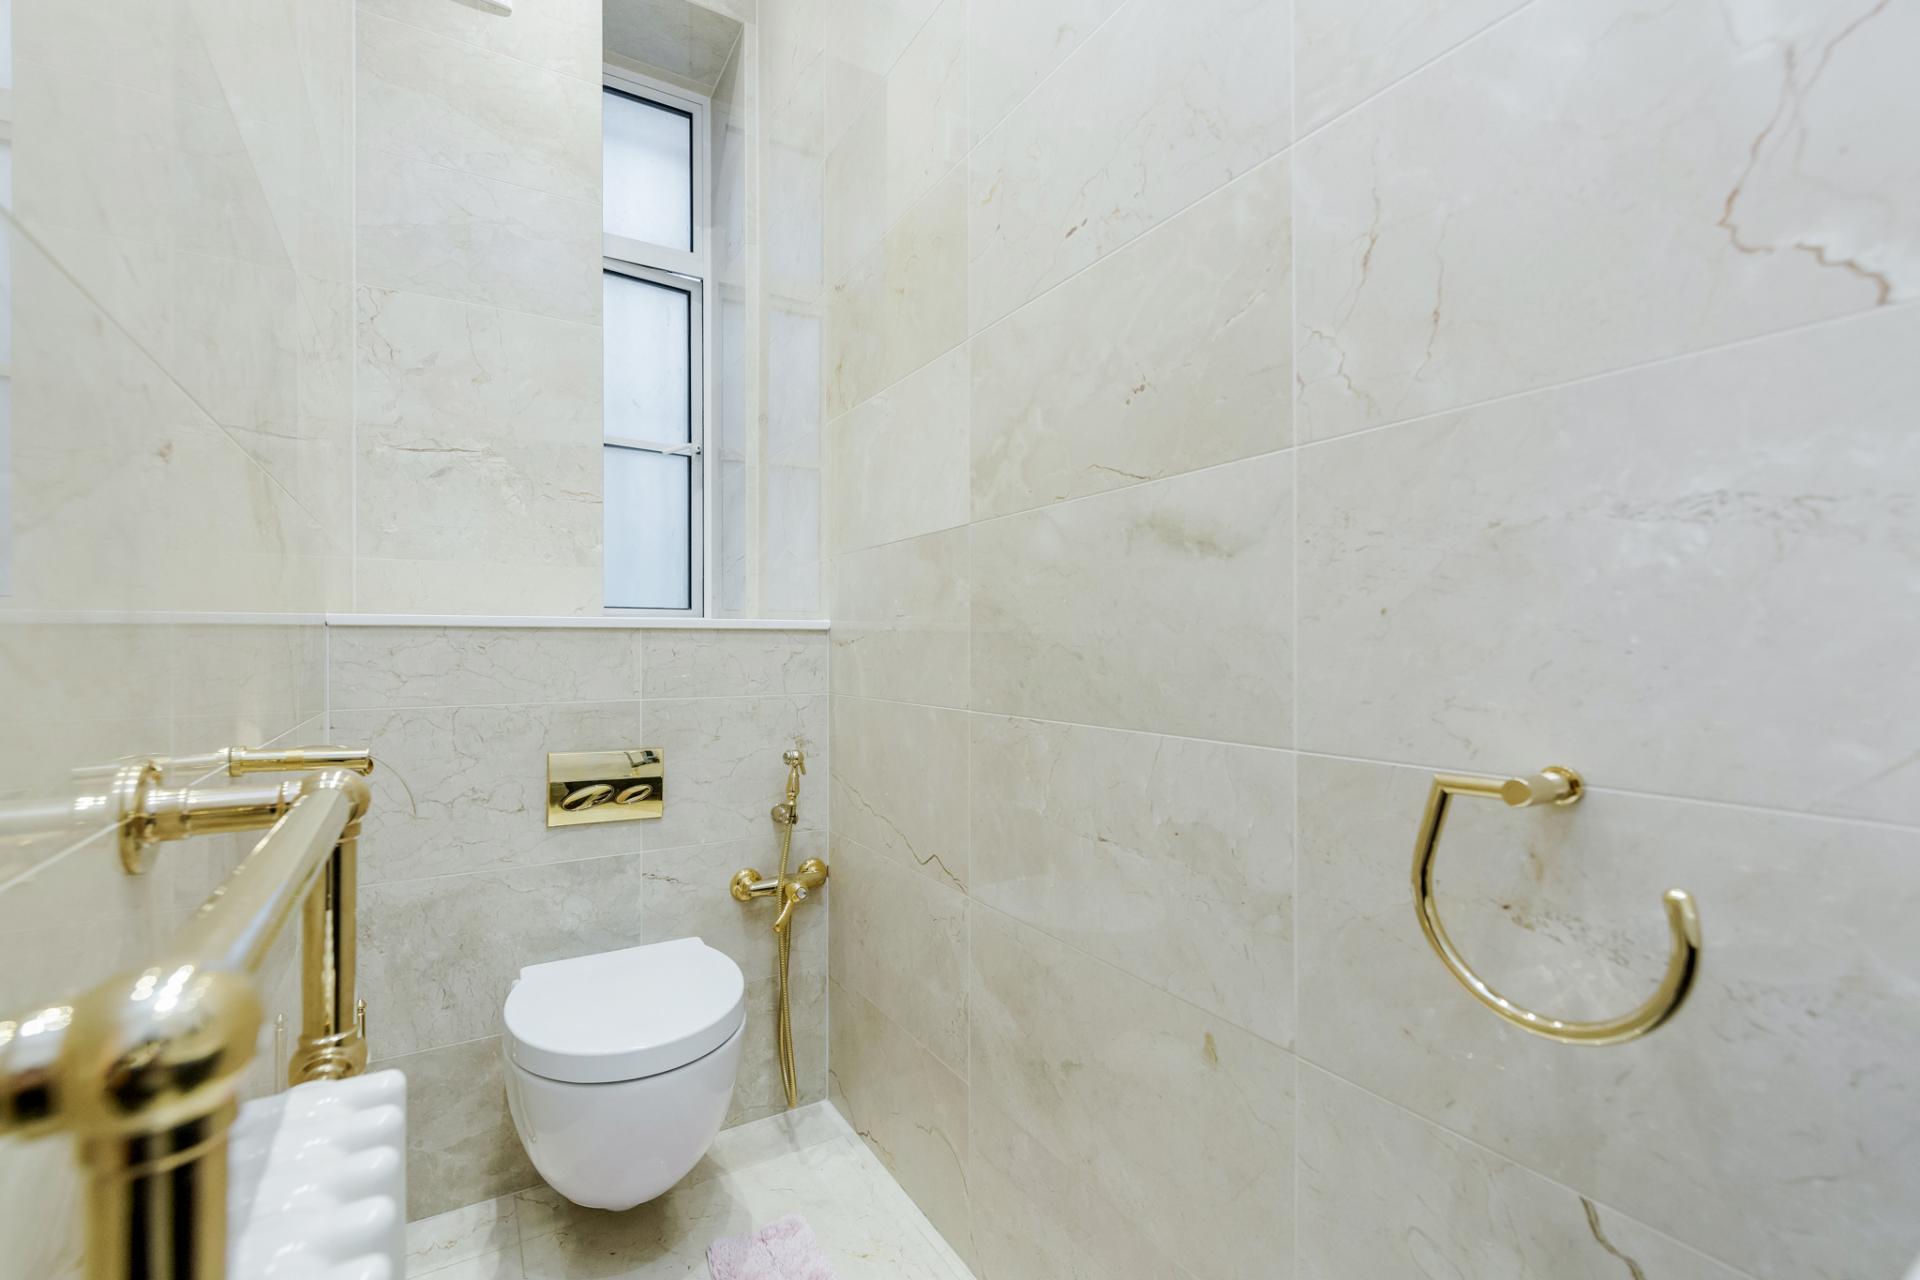 Toilet at Grosvenor Square Apartment, Mayfair, London - Citybase Apartments